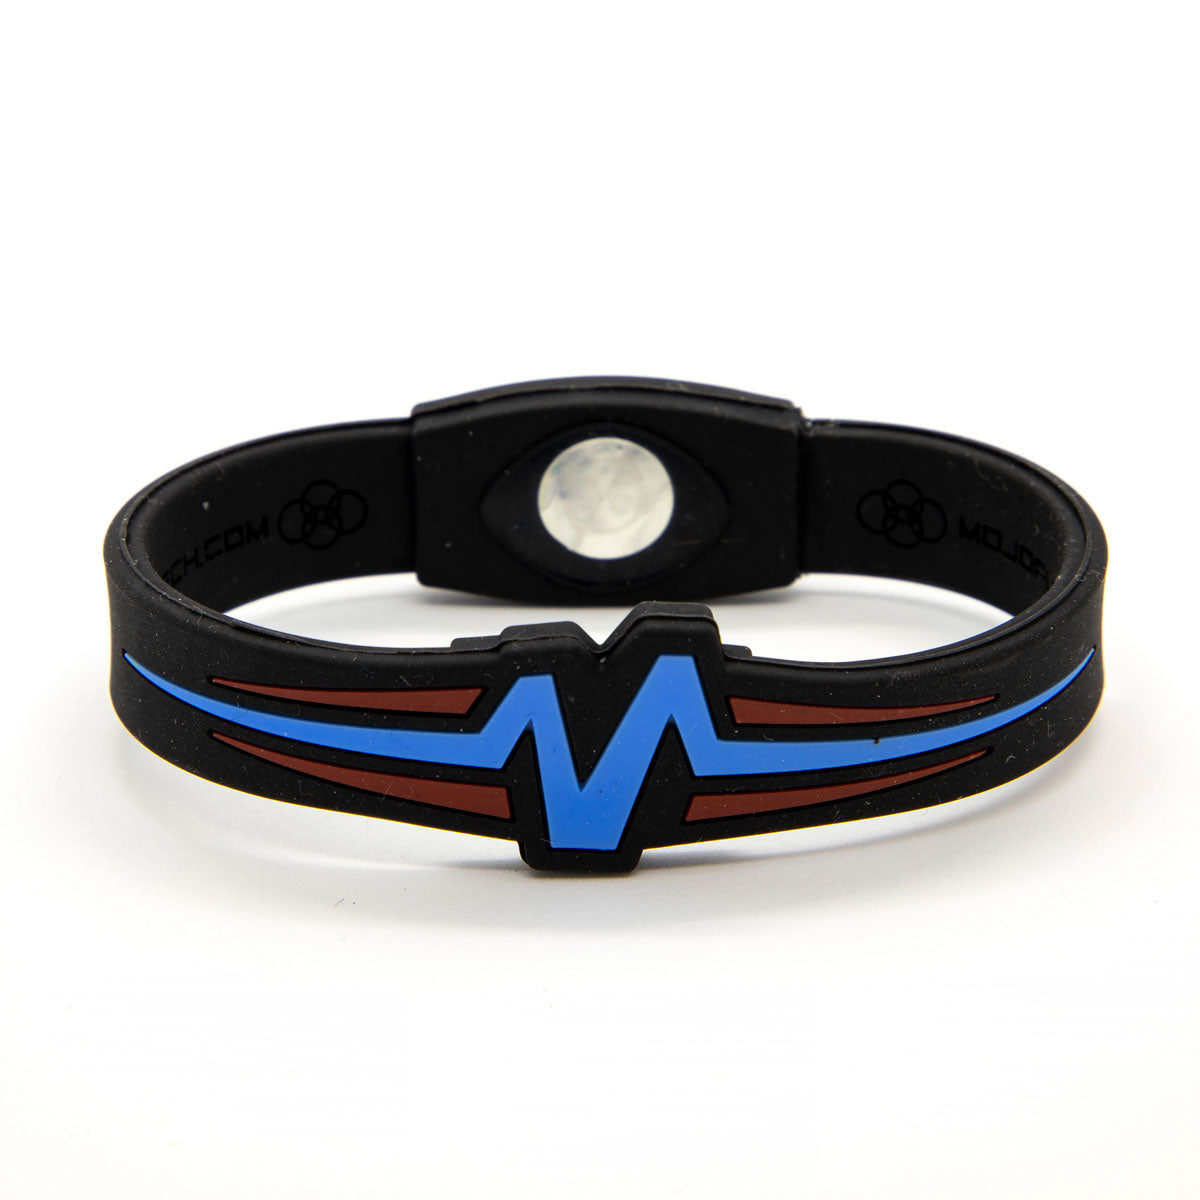 Advantage Raptor Double Disc Wristband